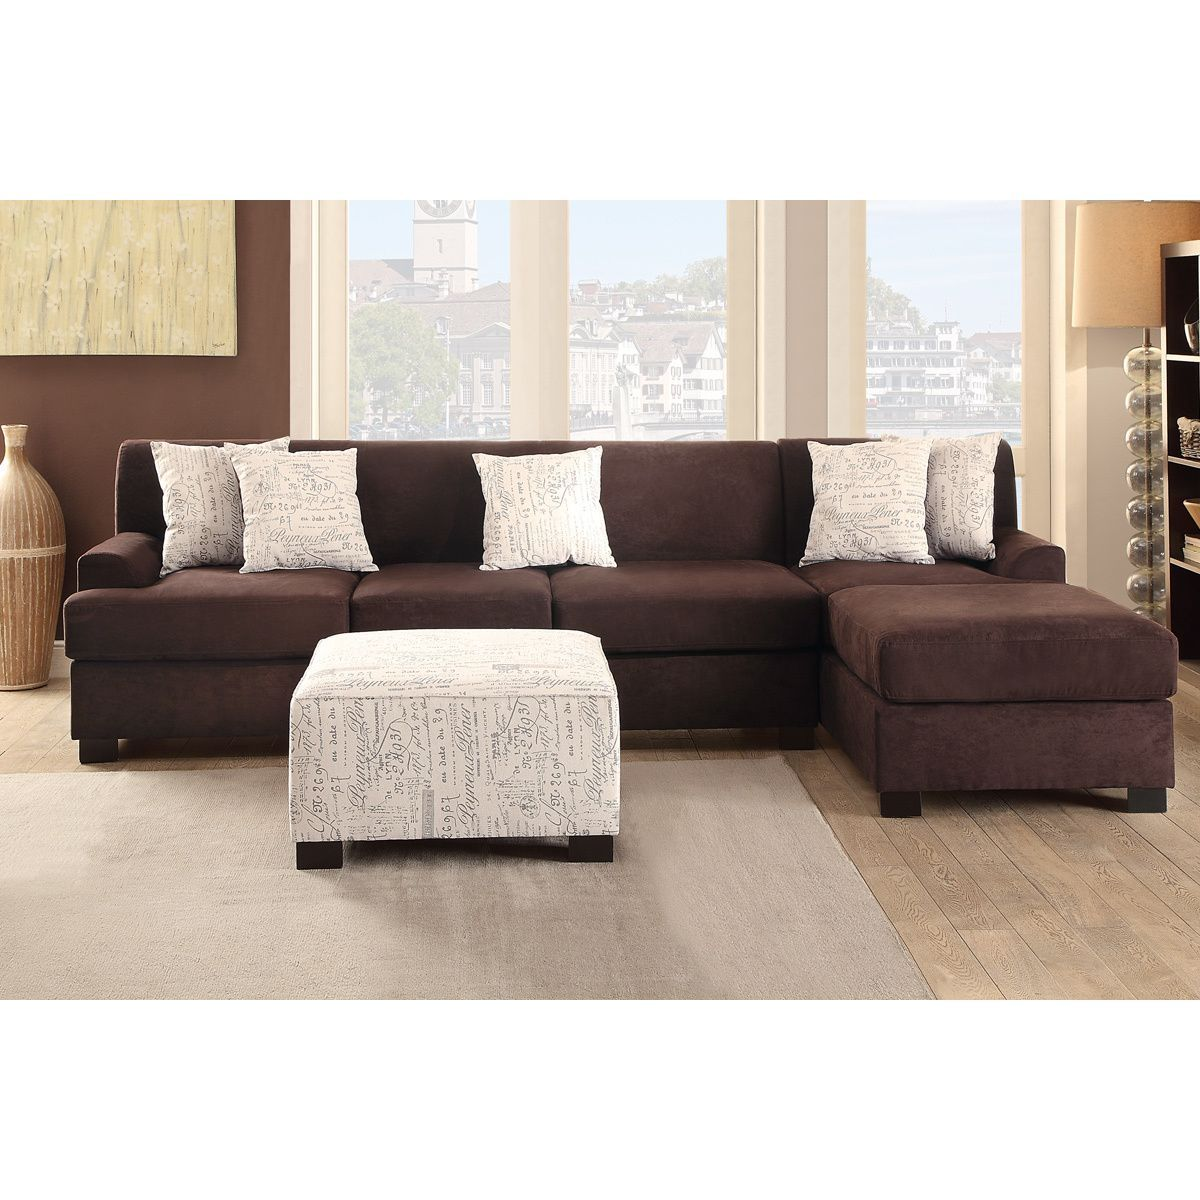 Poundex Narvik Large 2 Piece Microsuede Sectional Sofa With Matching  Ottoman (